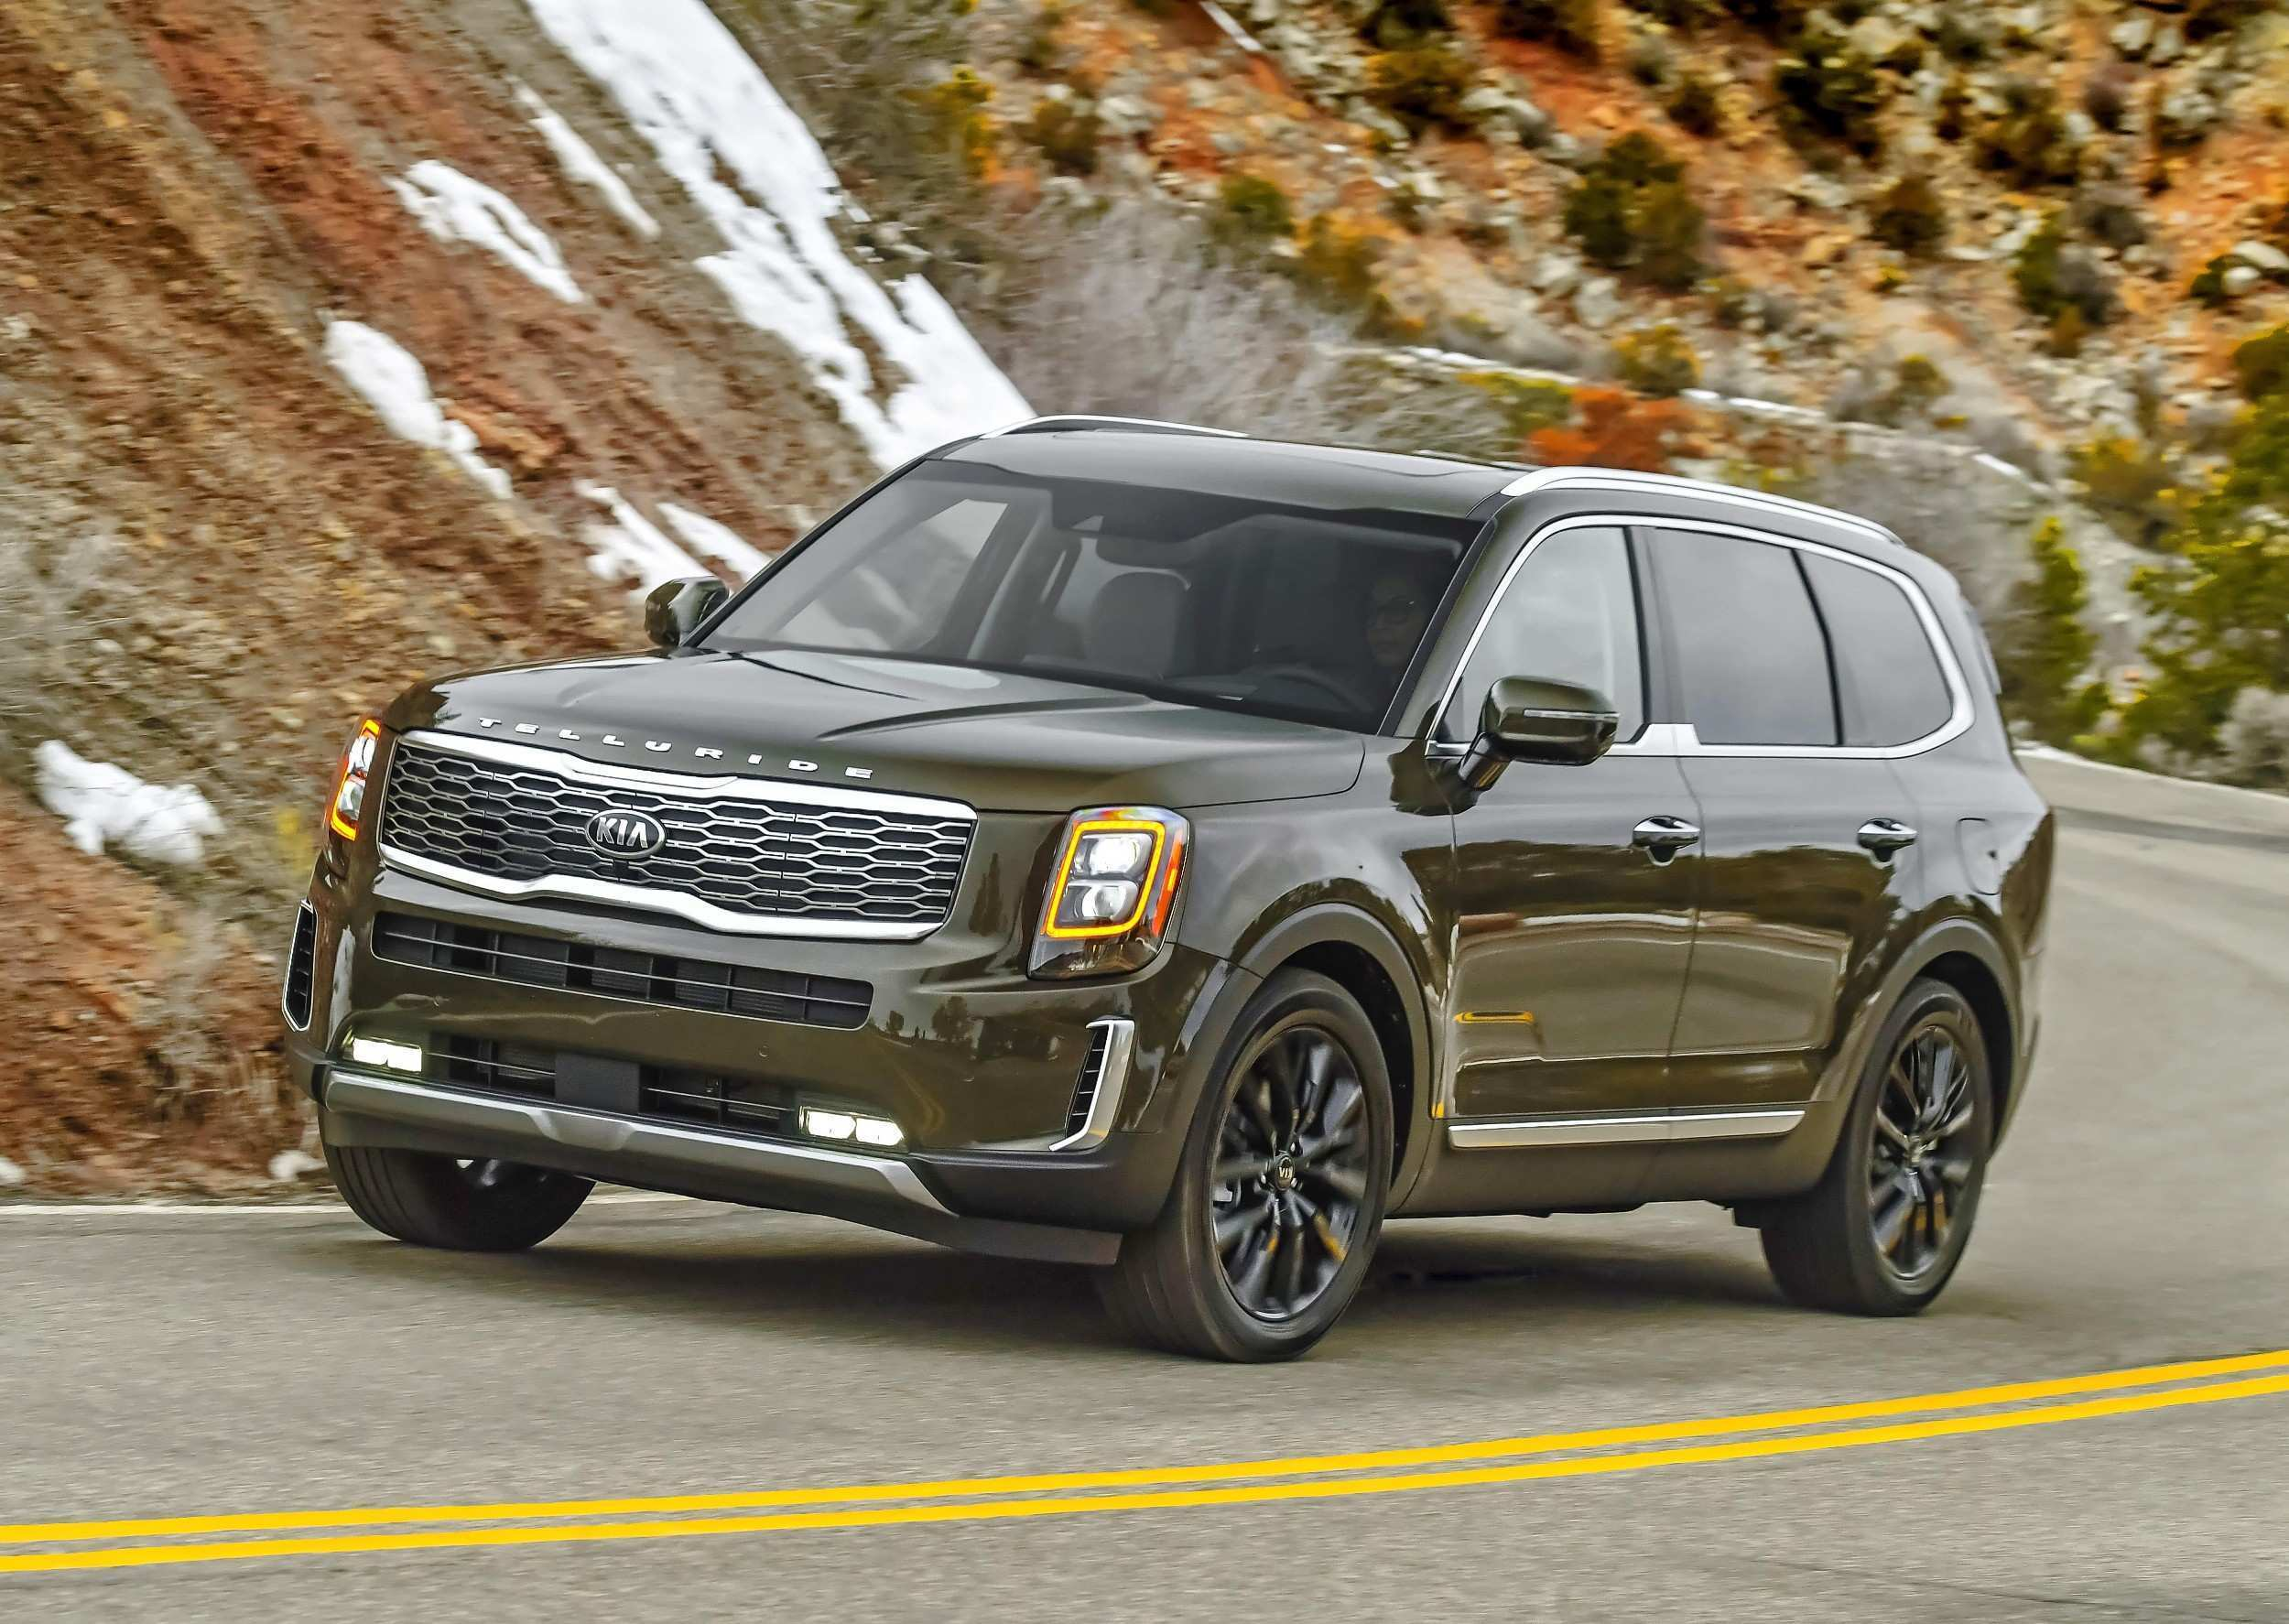 47 A 2020 Kia Telluride Youtube Spesification